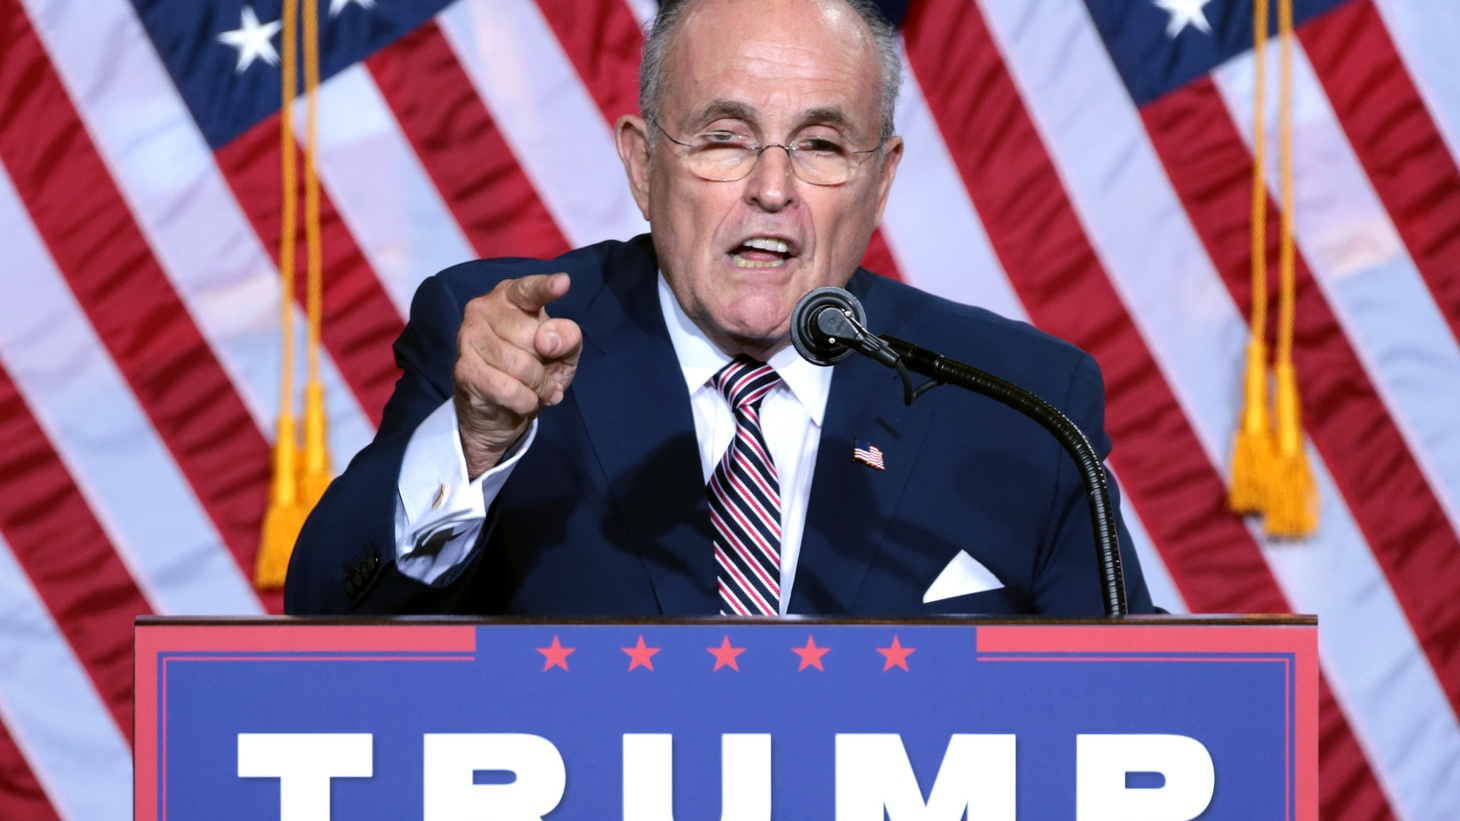 Former Mayor Rudy Giuliani of New York City speaking to supporters at an immigration policy speech hosted by Donald Trump at the Phoenix Convention Center in Phoenix, Arizona.